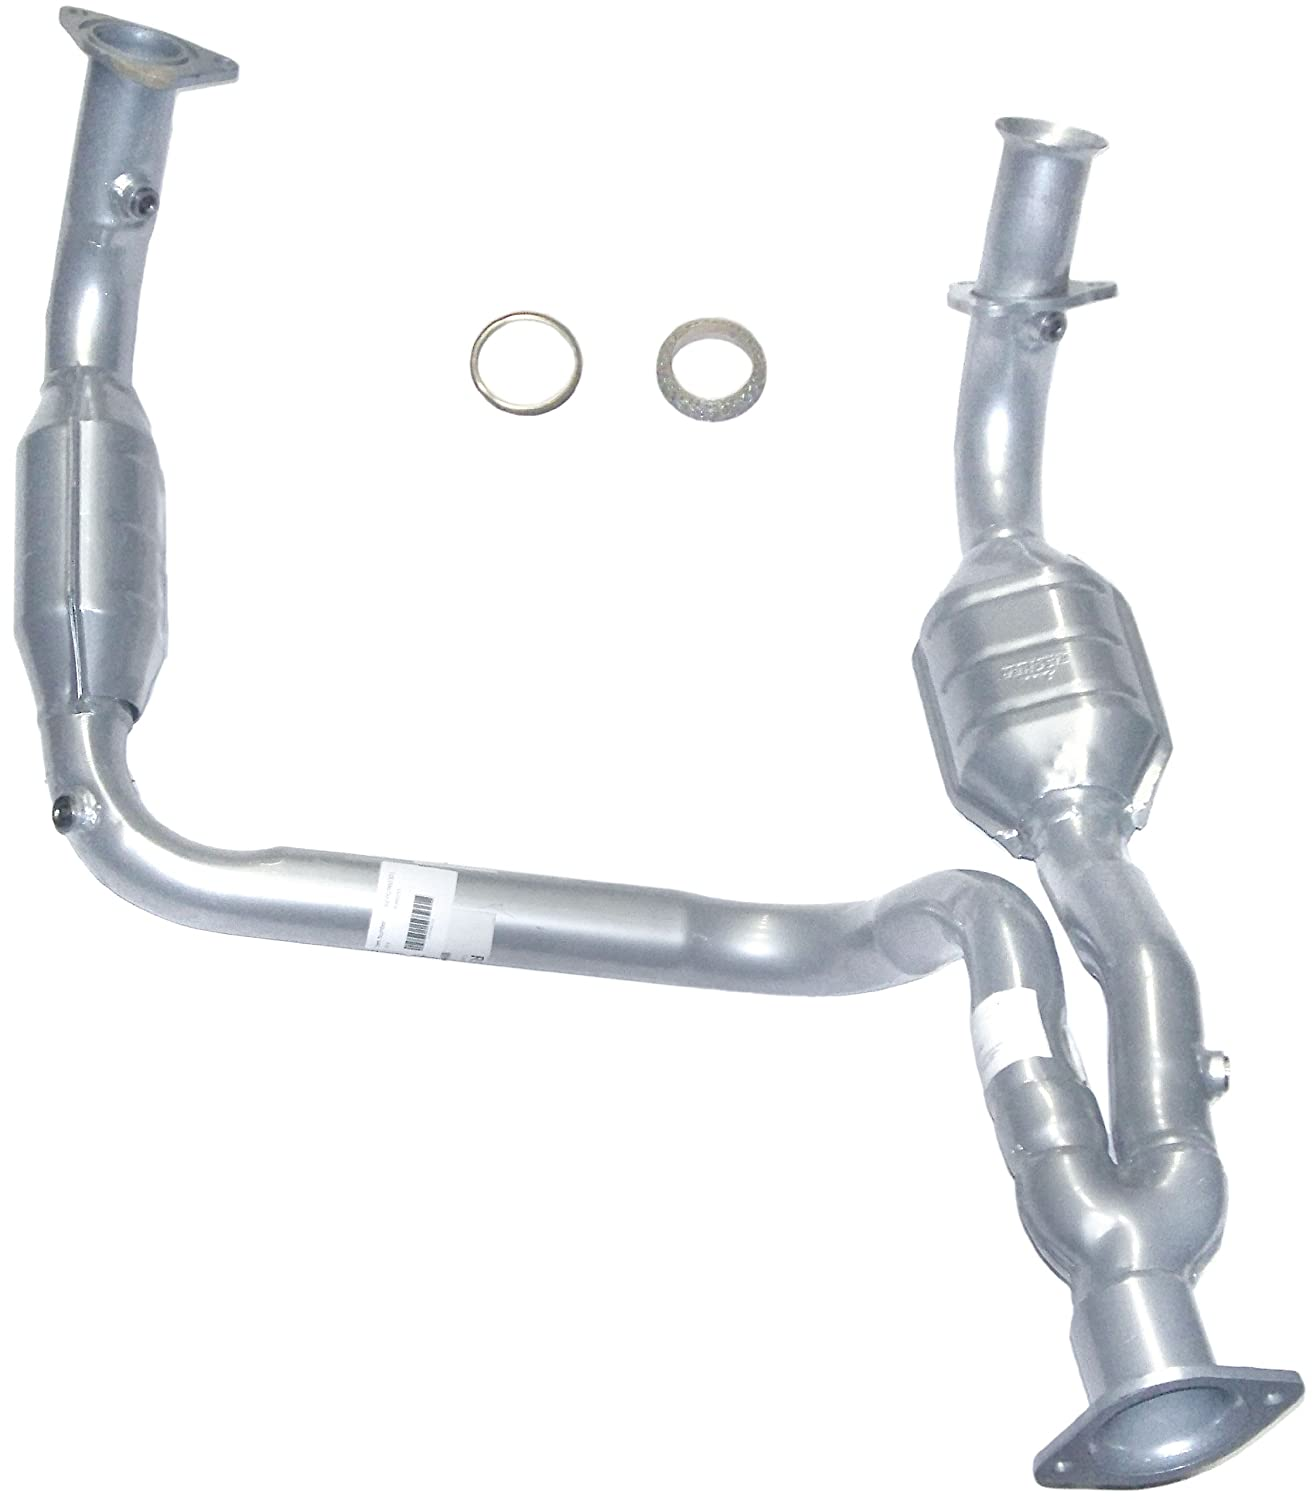 Amazon com evanfischer repg960301 silver powder coated catalytic converter with heat shield automotive